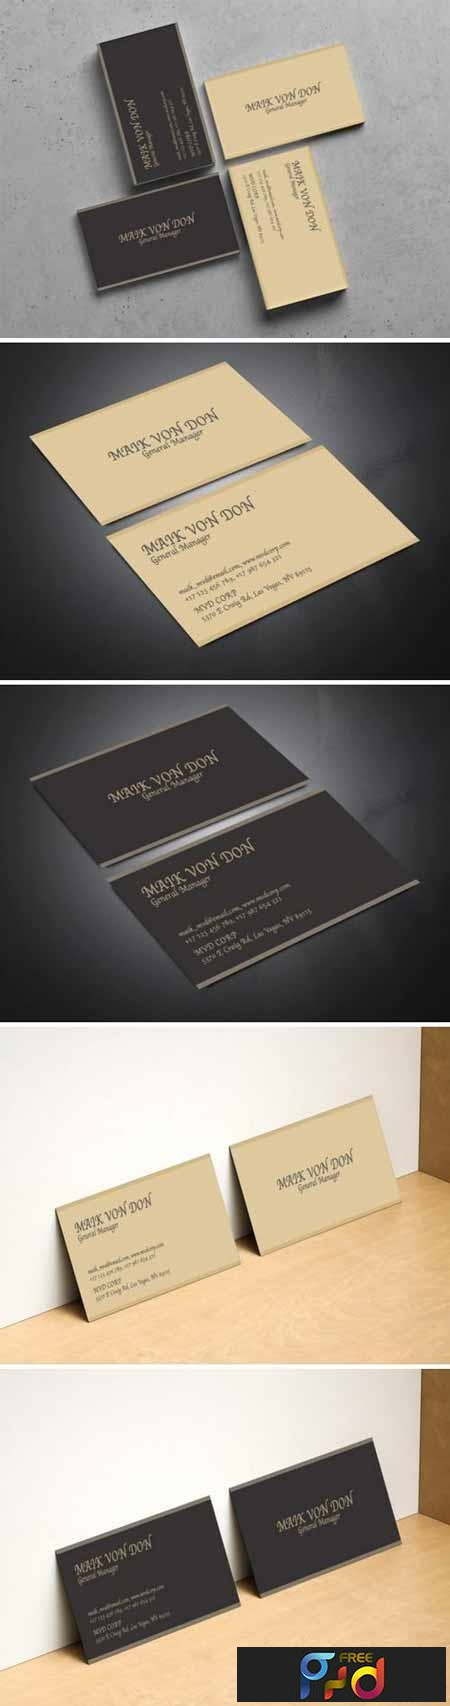 Business Card 939427 1